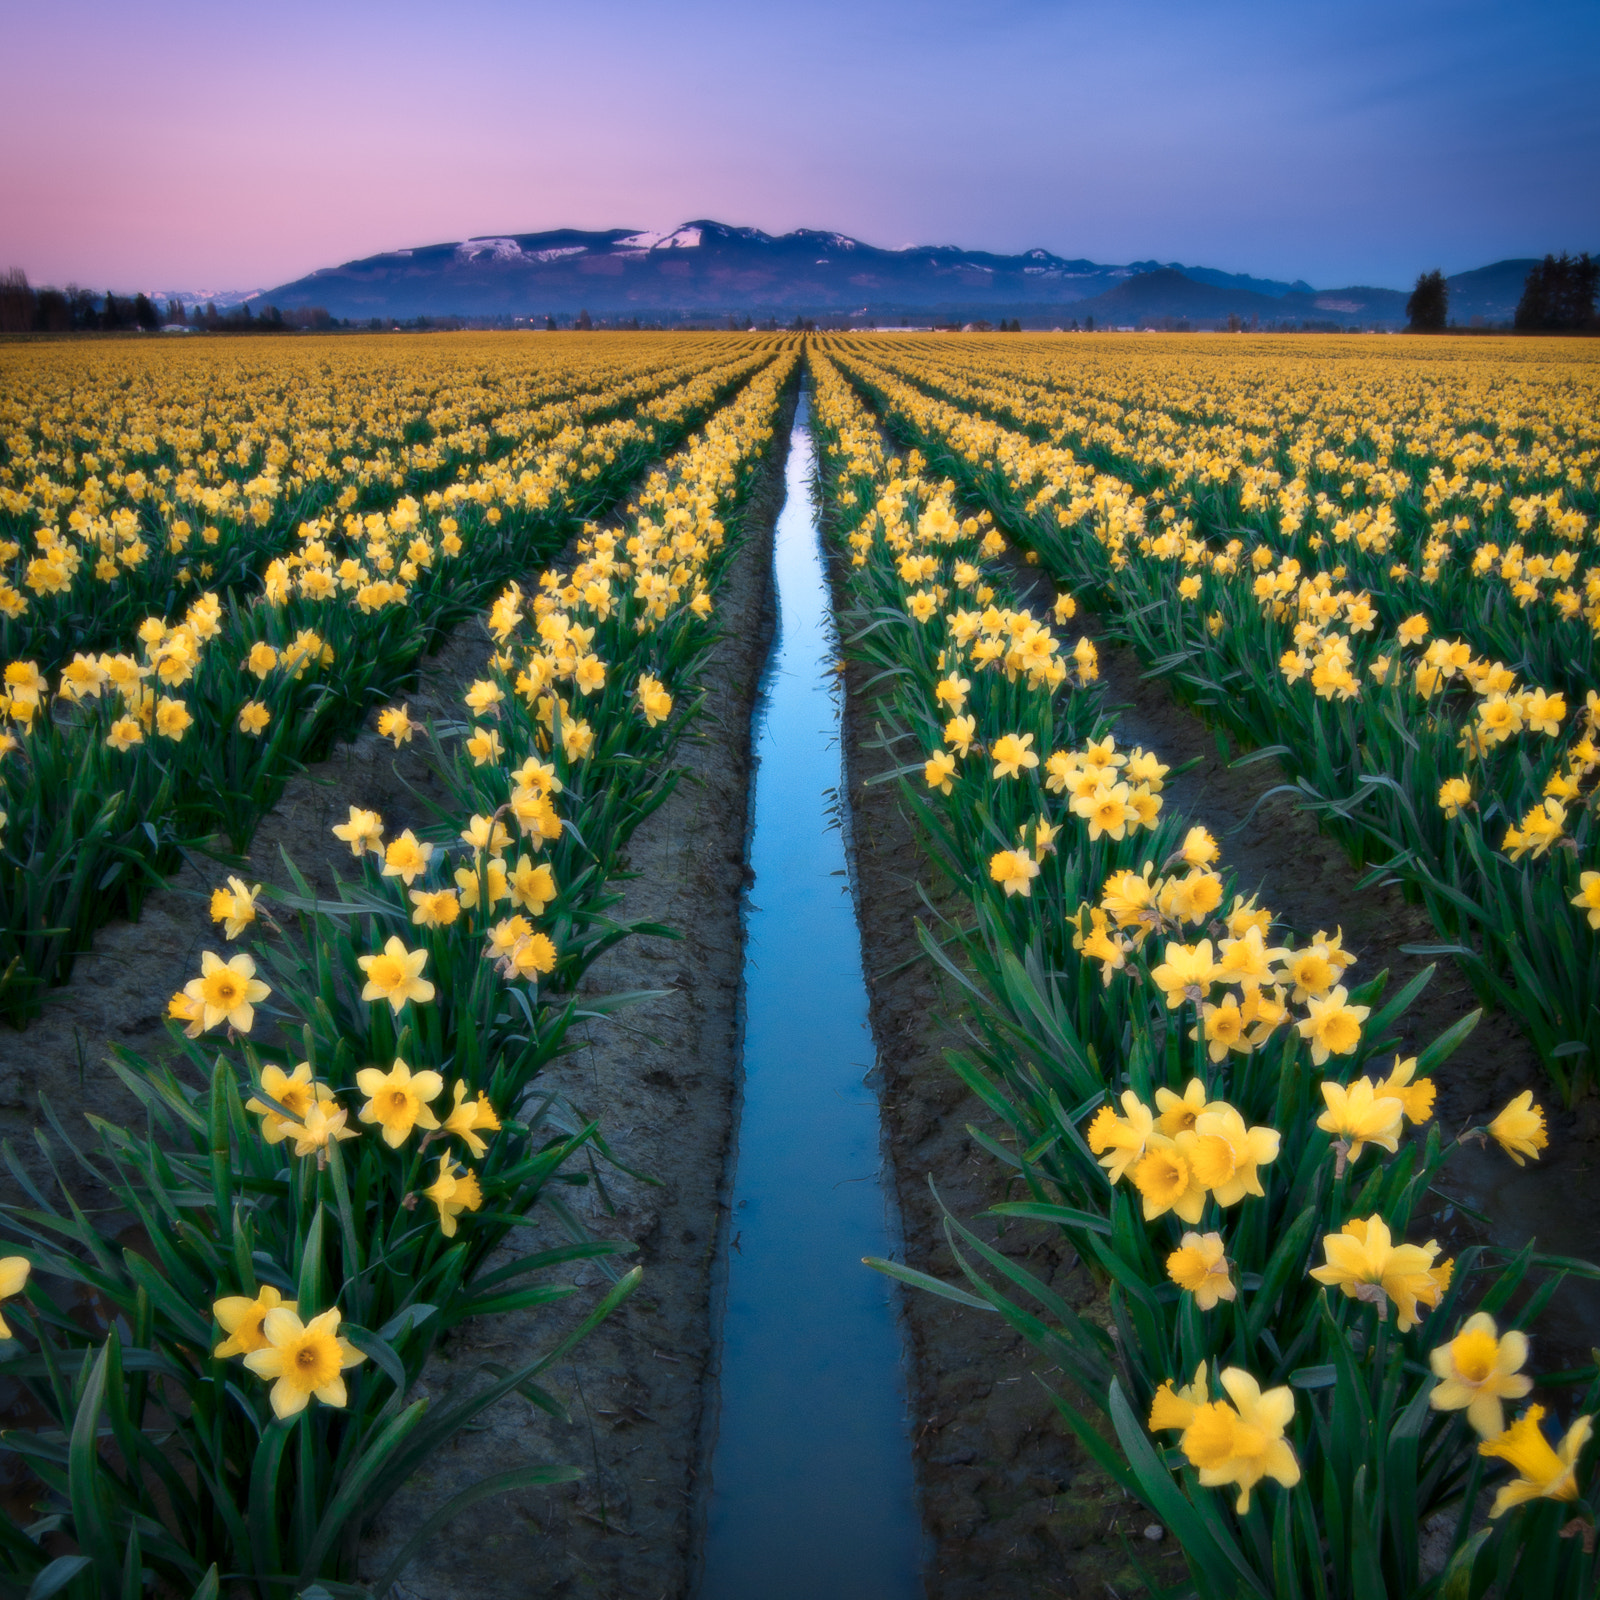 Photograph Skagit Valley Daffodils by Jay D. on 500px